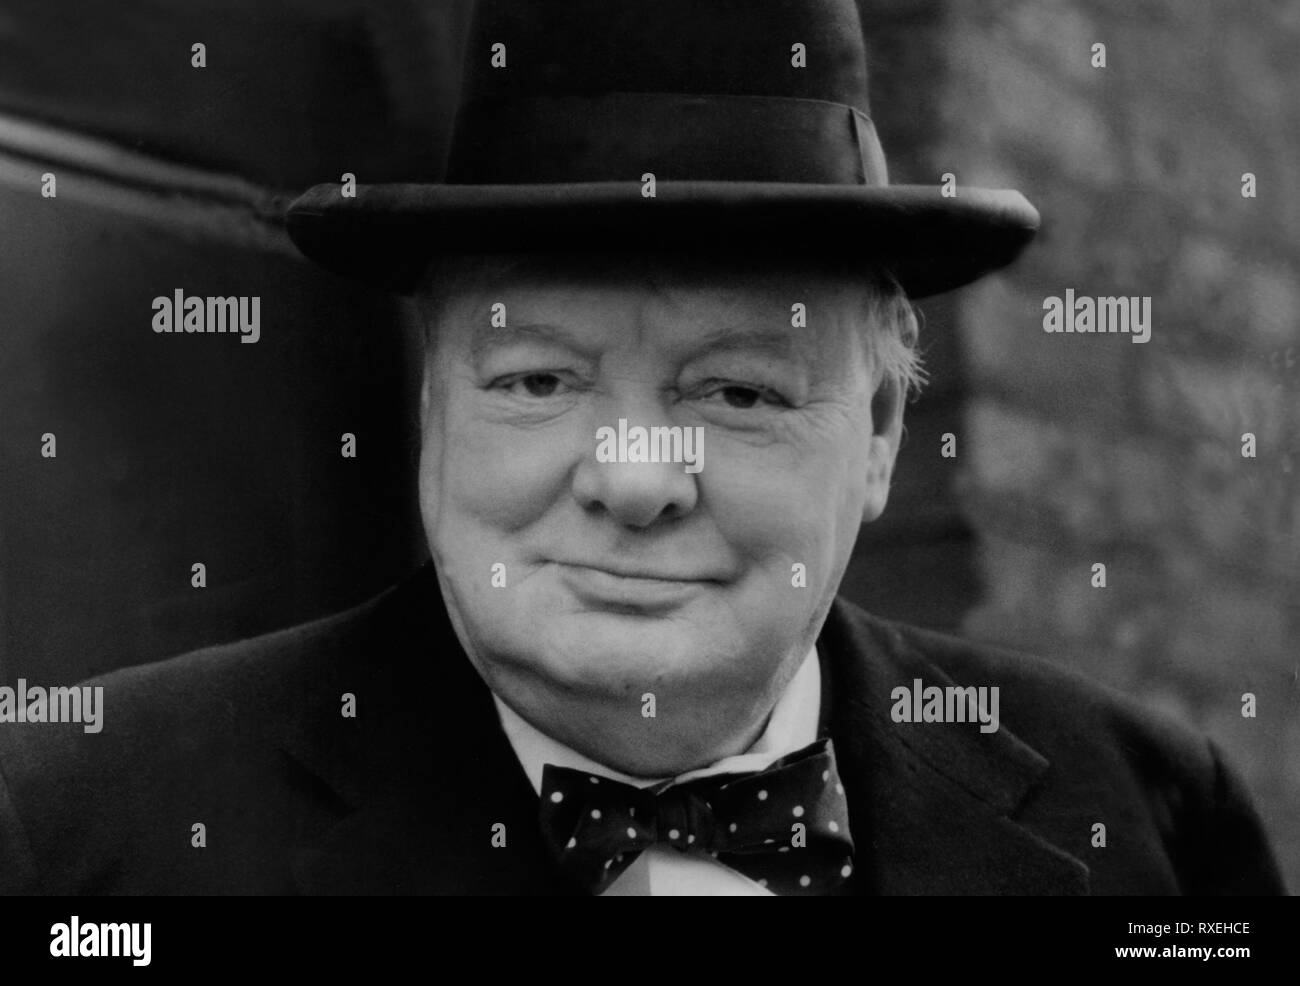 Sir Winston Churchill British wartime leader. 1940's image. Copyright from the archives of Press Portrait Service (Formerly Press Portrait Bureau) - Stock Image